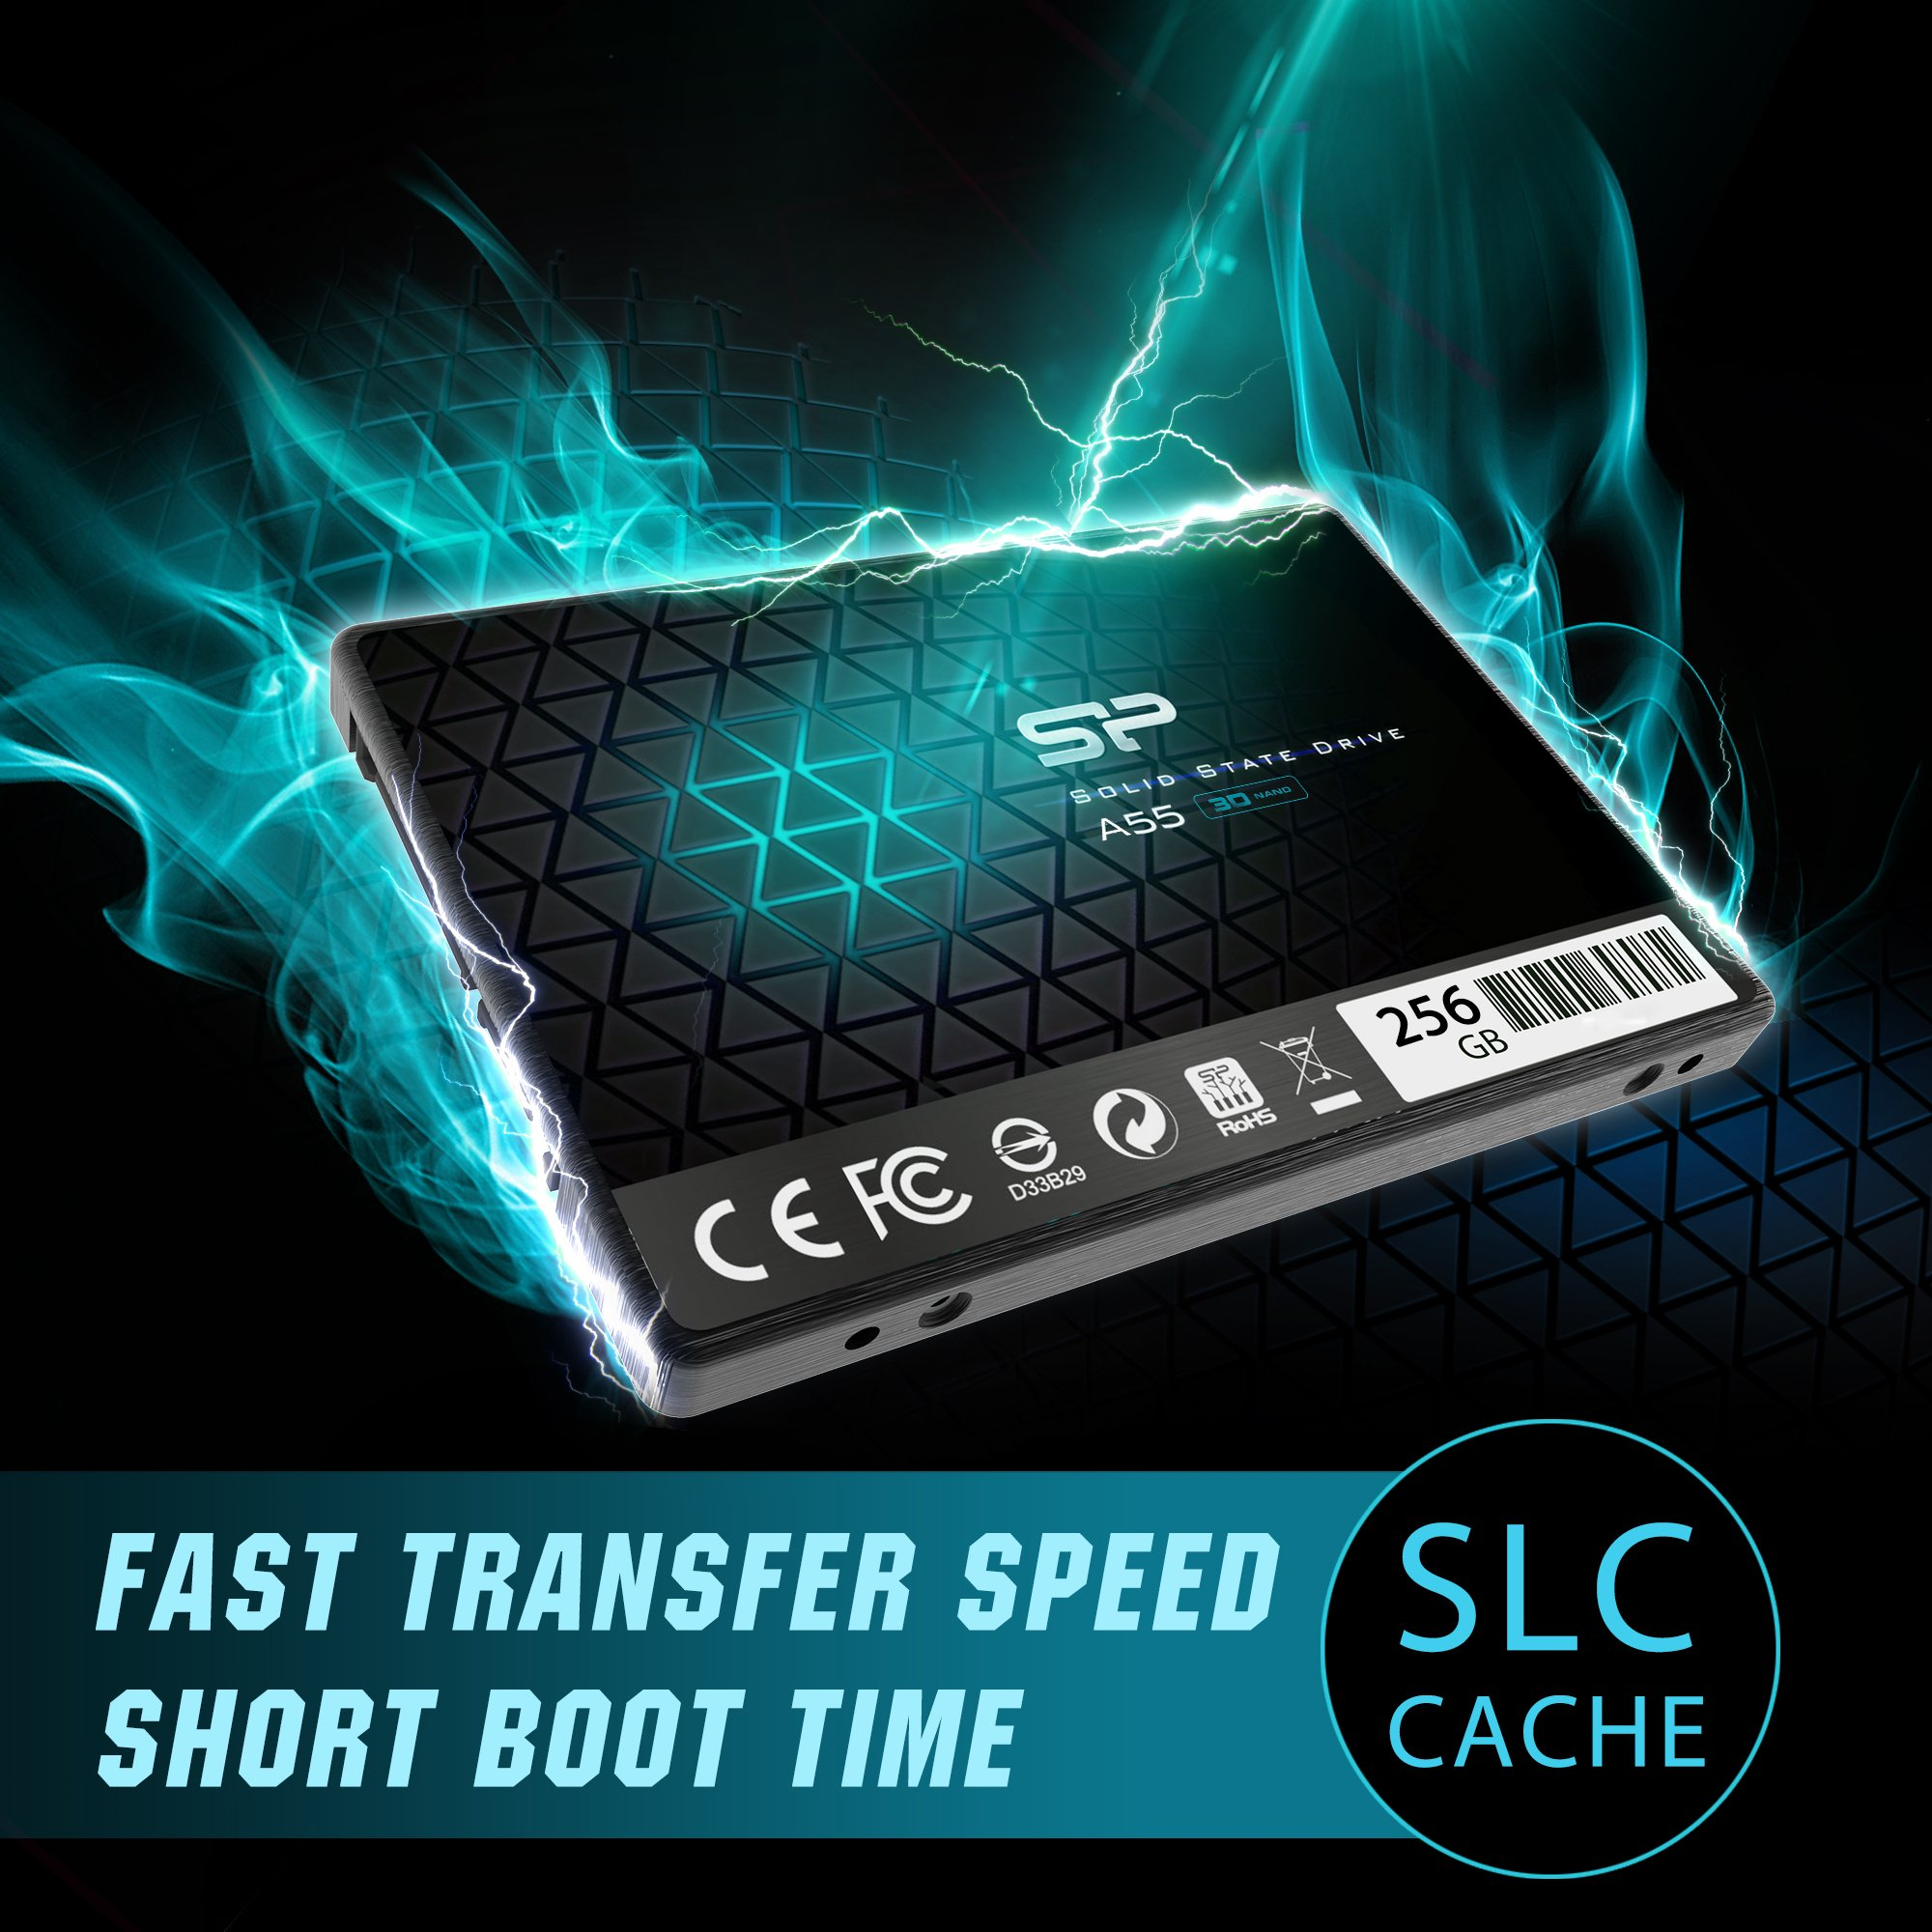 Silicon Power 256GB SSD 3D NAND A55 SLC Cache Performance Boost SATA III 2.5'' 7mm (0.28'') Internal Solid State Drive (SP256GBSS3A55S25) by SP Silicon Power (Image #3)